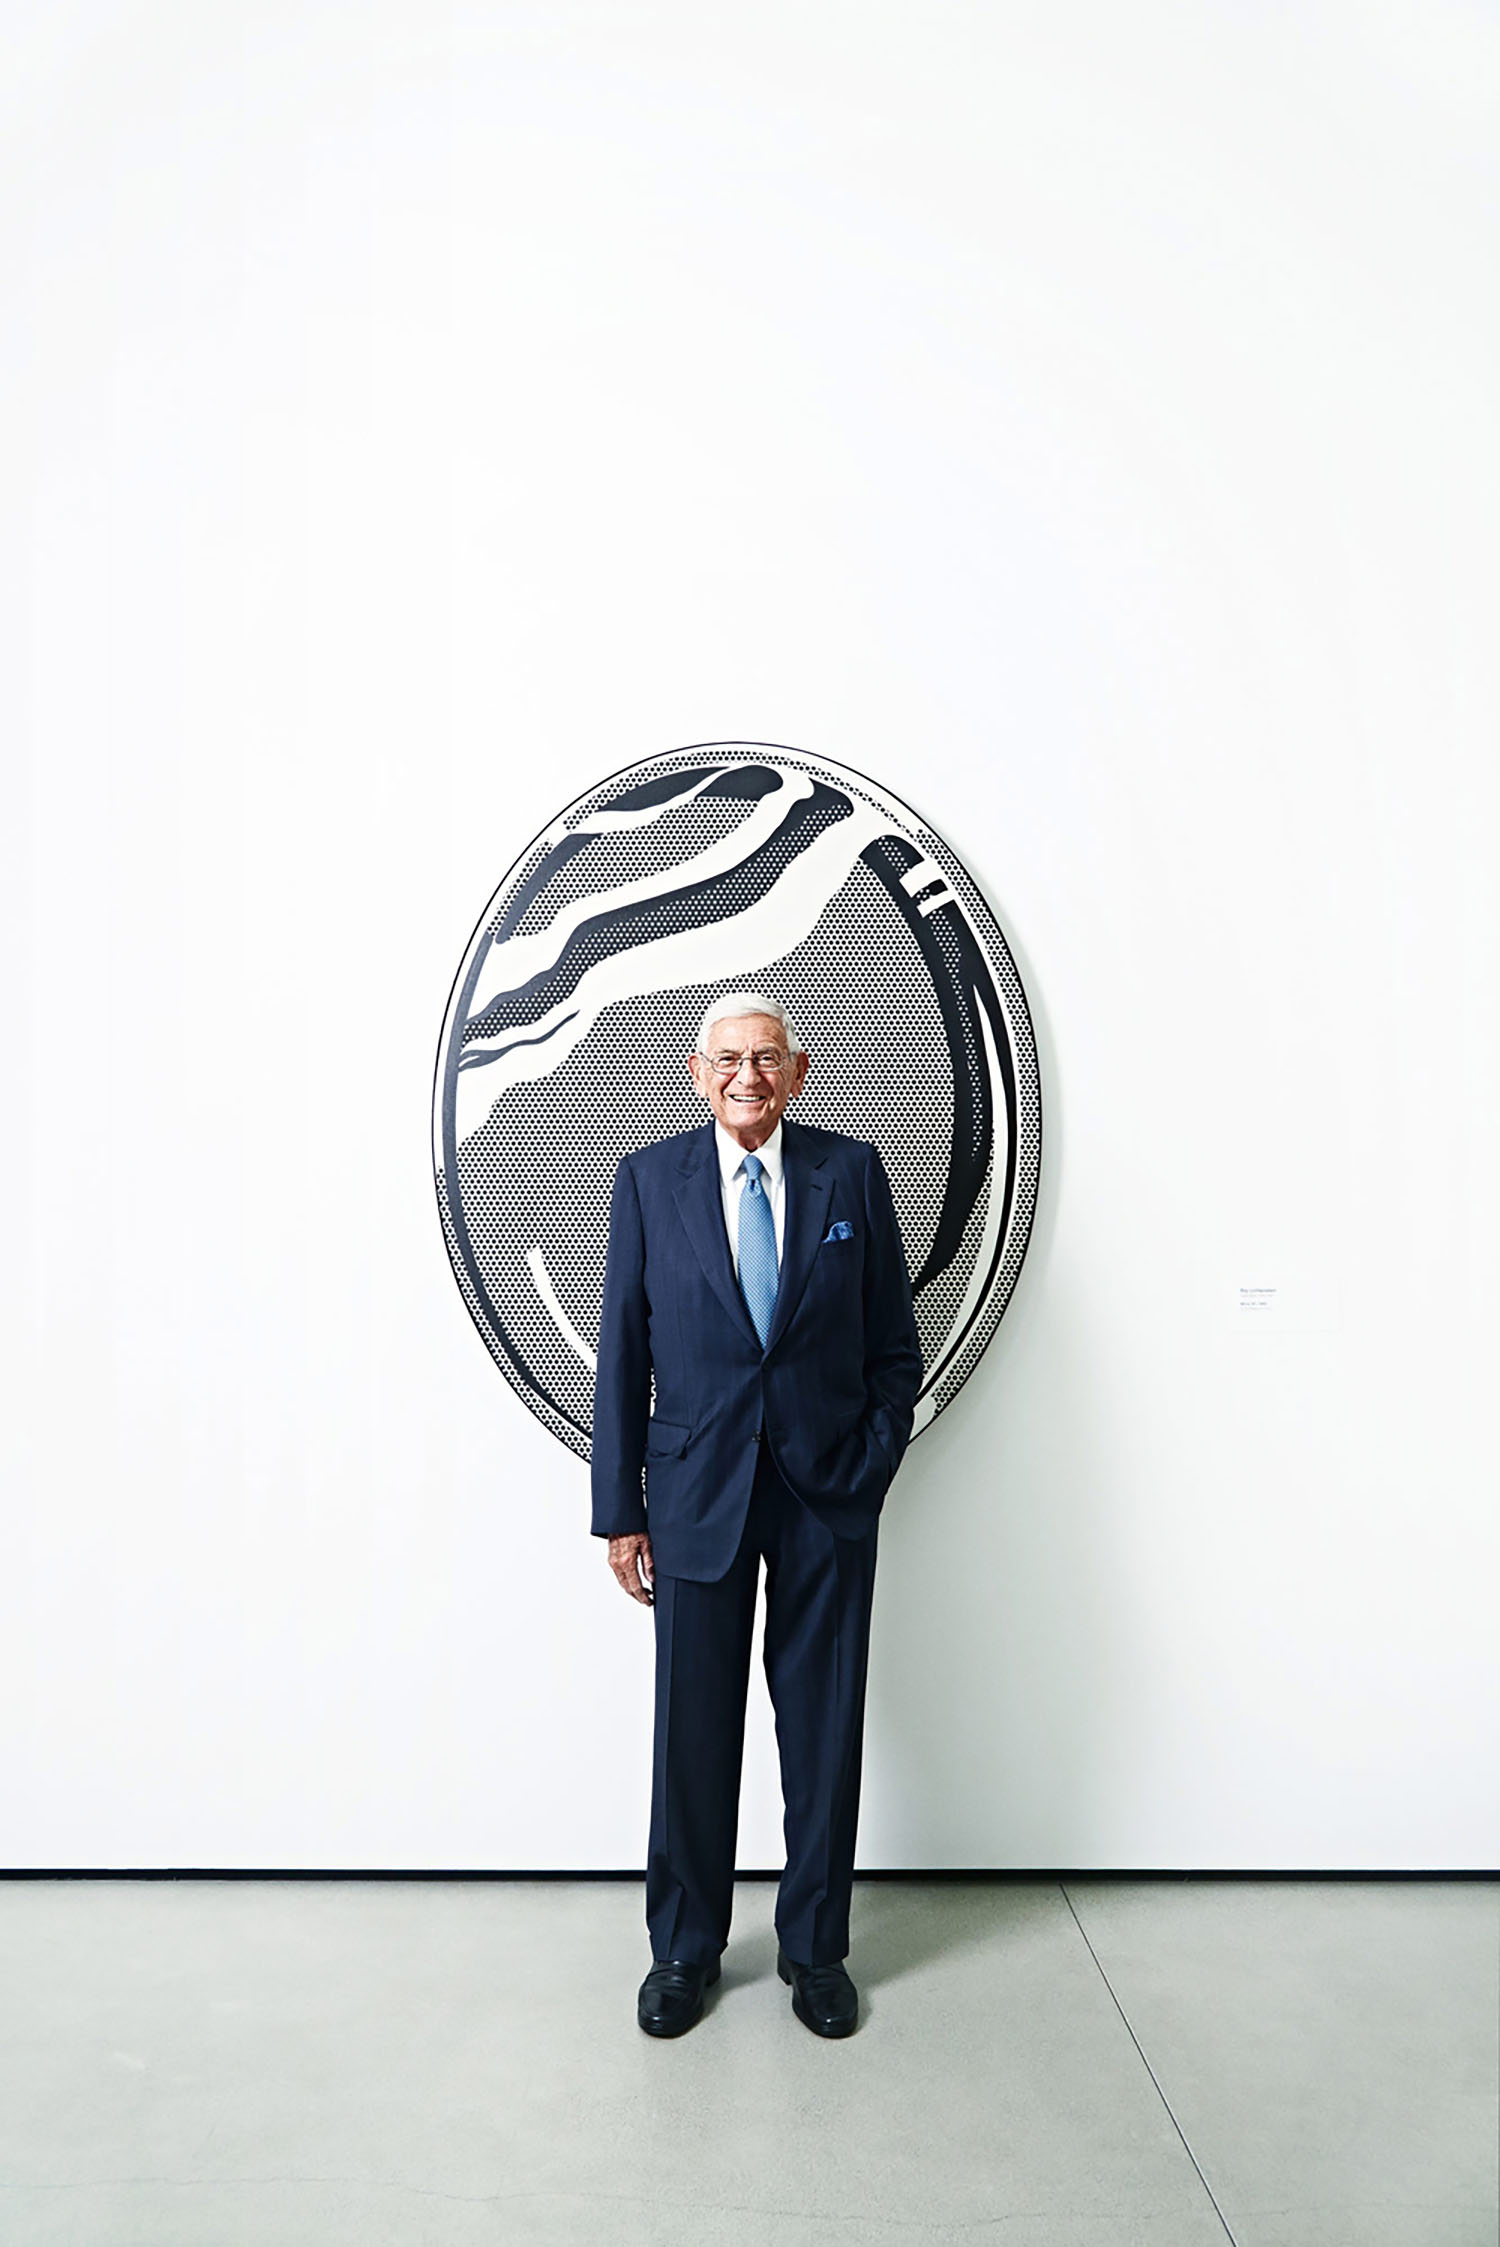 Eli Broad, Entrepreneur & Philanthropist, Los Angeles, California, 2015